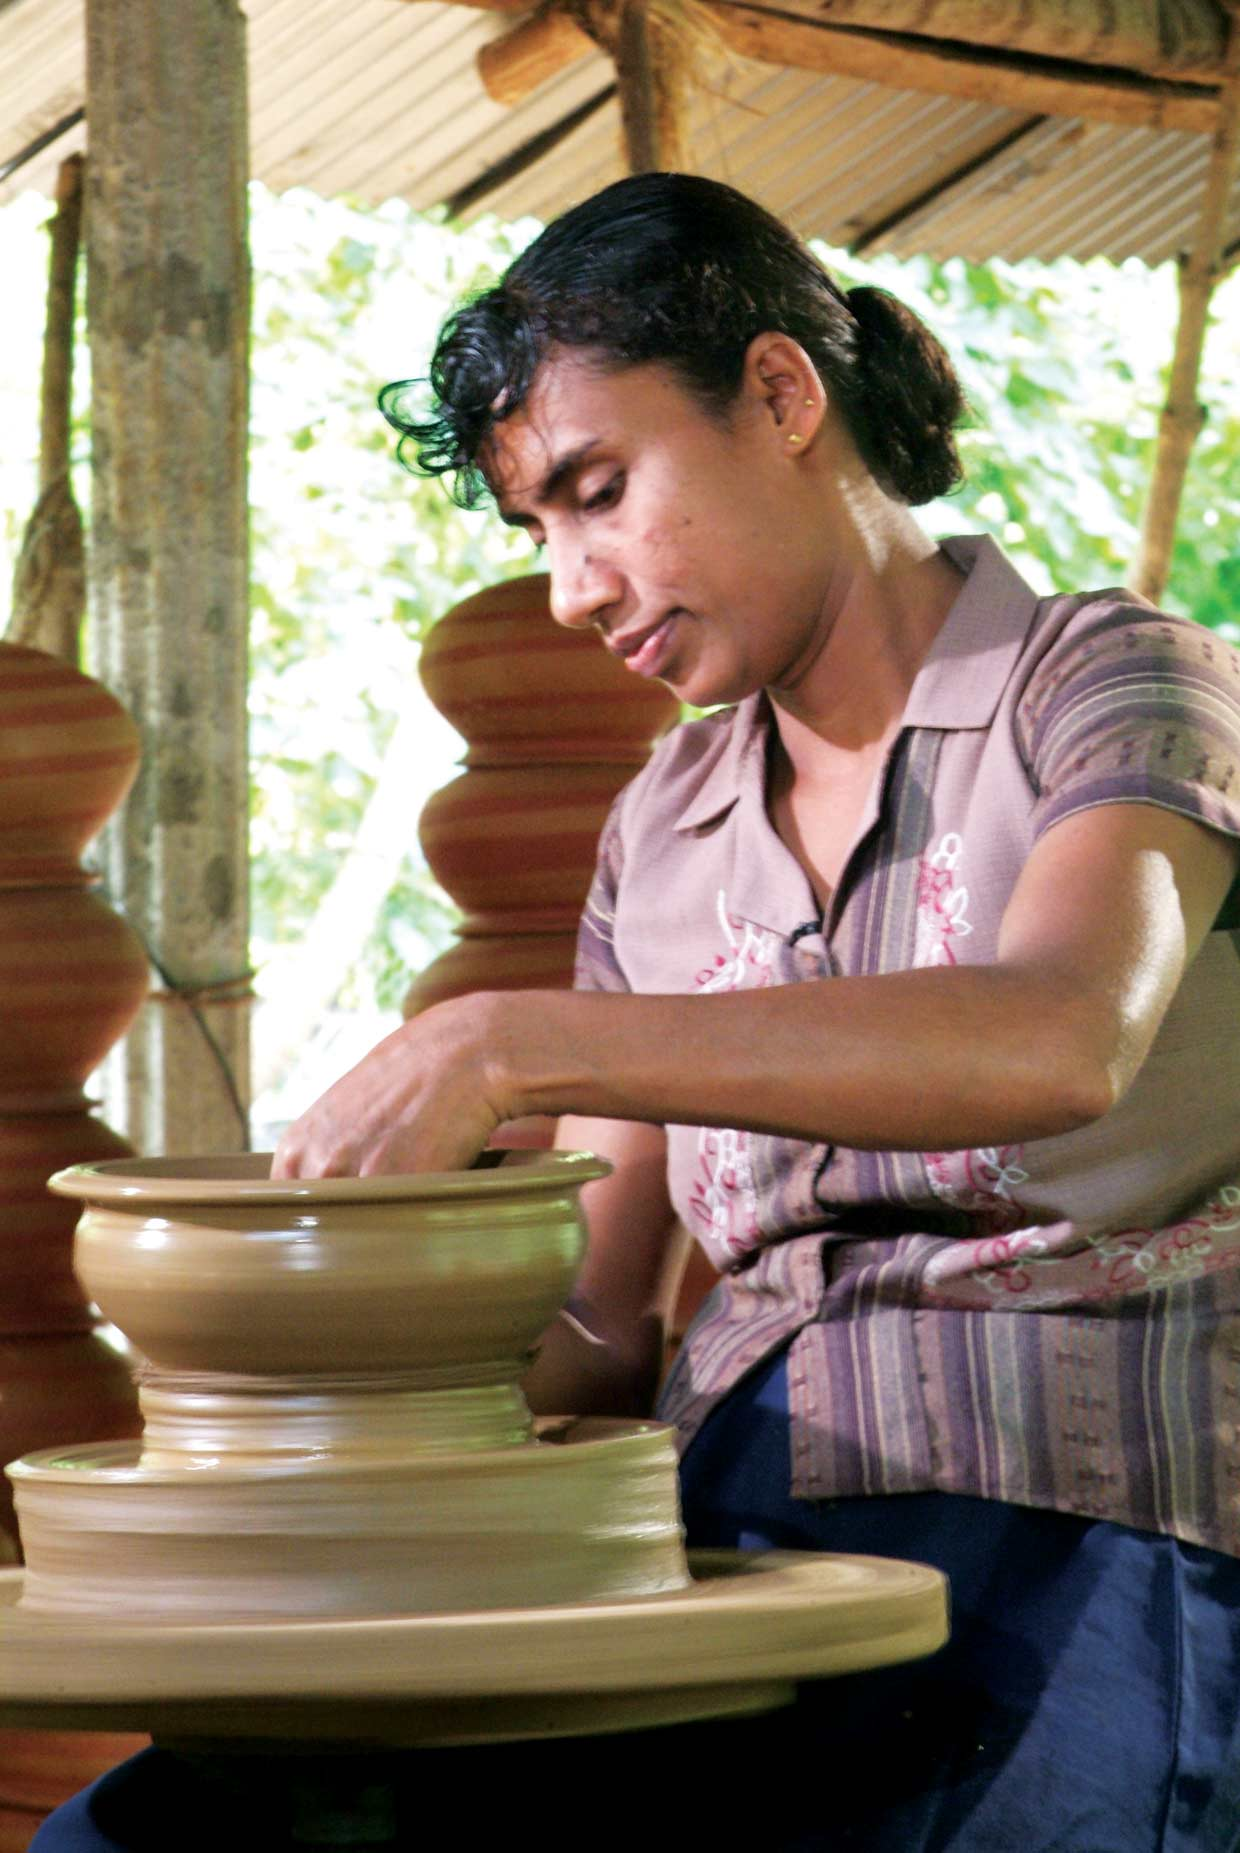 Small Entrepreneur Programme recipient Chandralatha from Moneragala in south eastern Sri Lanka creates beautiful pottery thanks to the support she received from the MJF Charitable Foundation in 2009. She is one of the 750 successful recipients of the scheme.